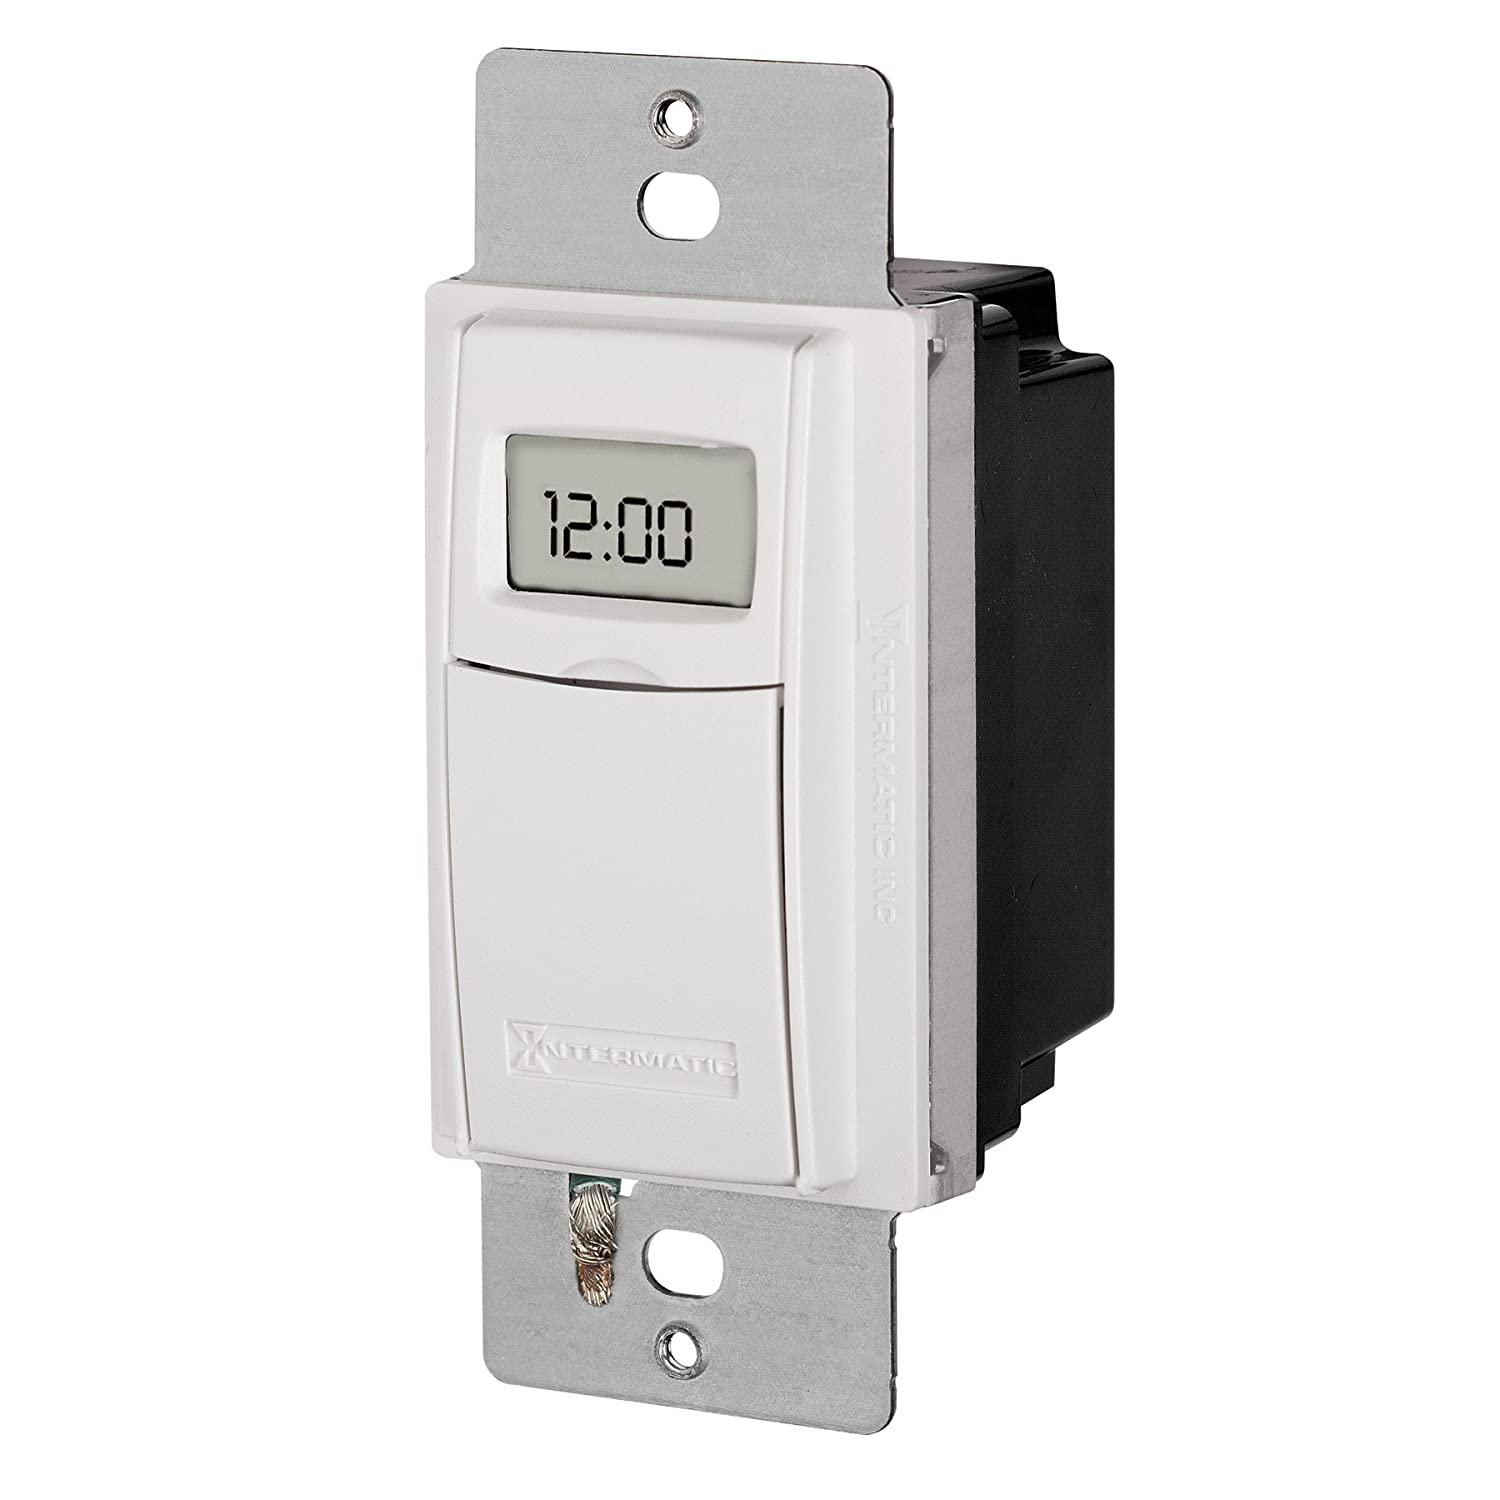 Intermatic ST01 7 Day Programmable In Wall Digital Timer Switch for Lights and Appliances, Astronomic, Self Adjusting, Heavy Duty